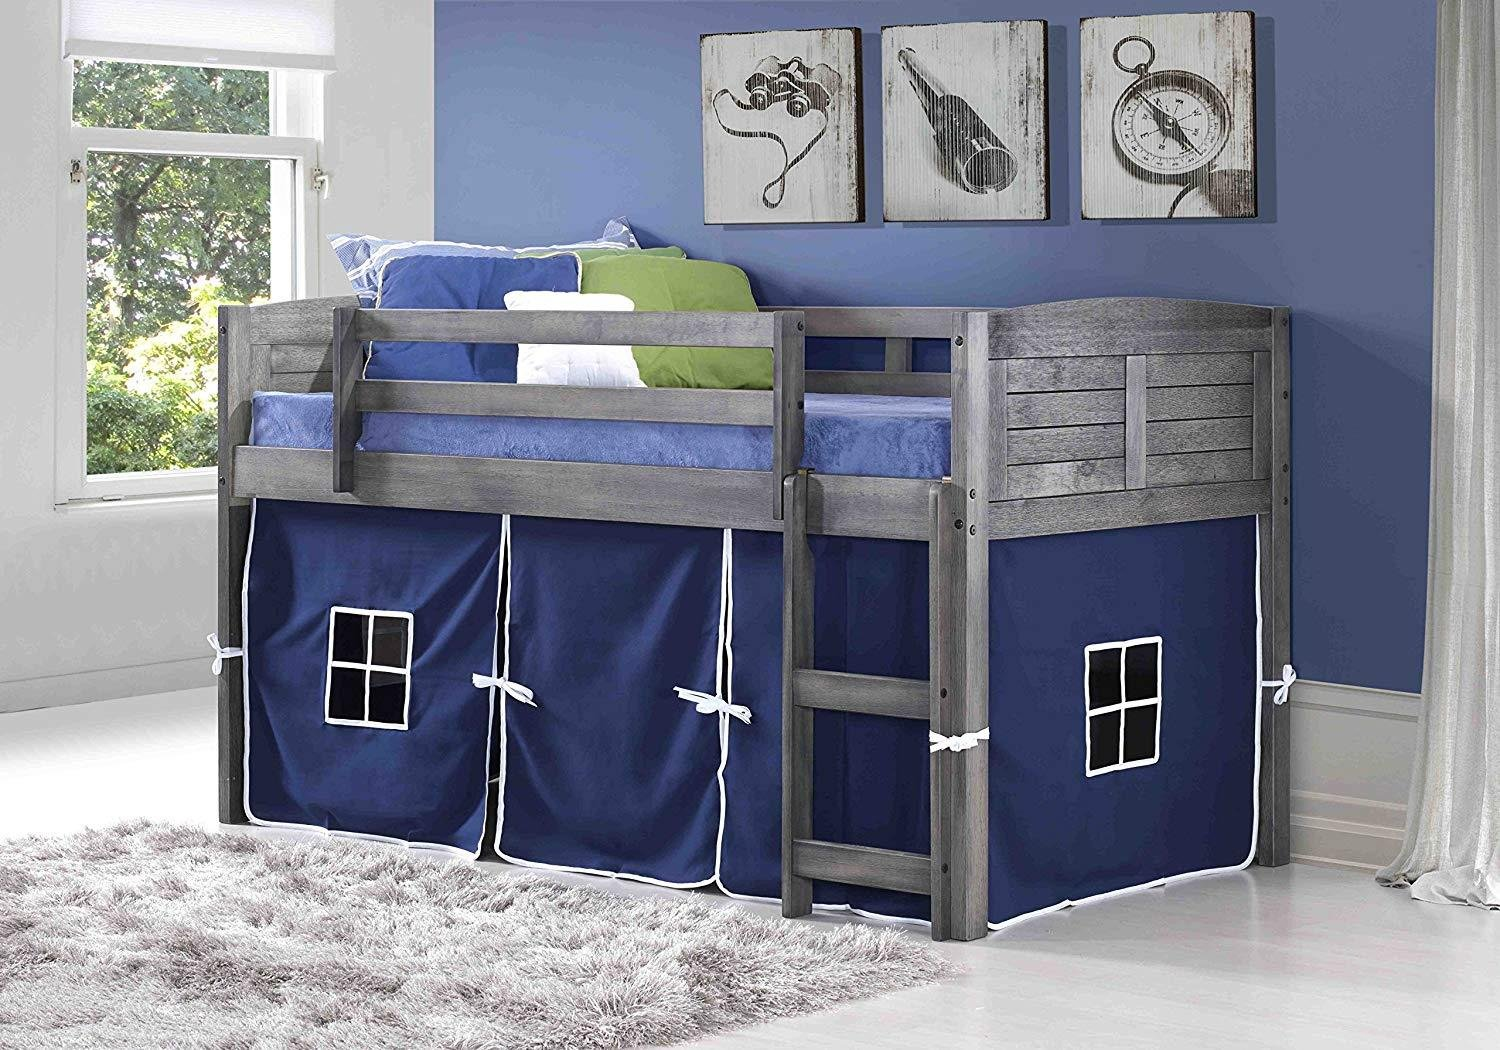 Donco Kids 790AAG_750C-TB Louver Loft Bed, Twin, Antique Grey by Donco Kids